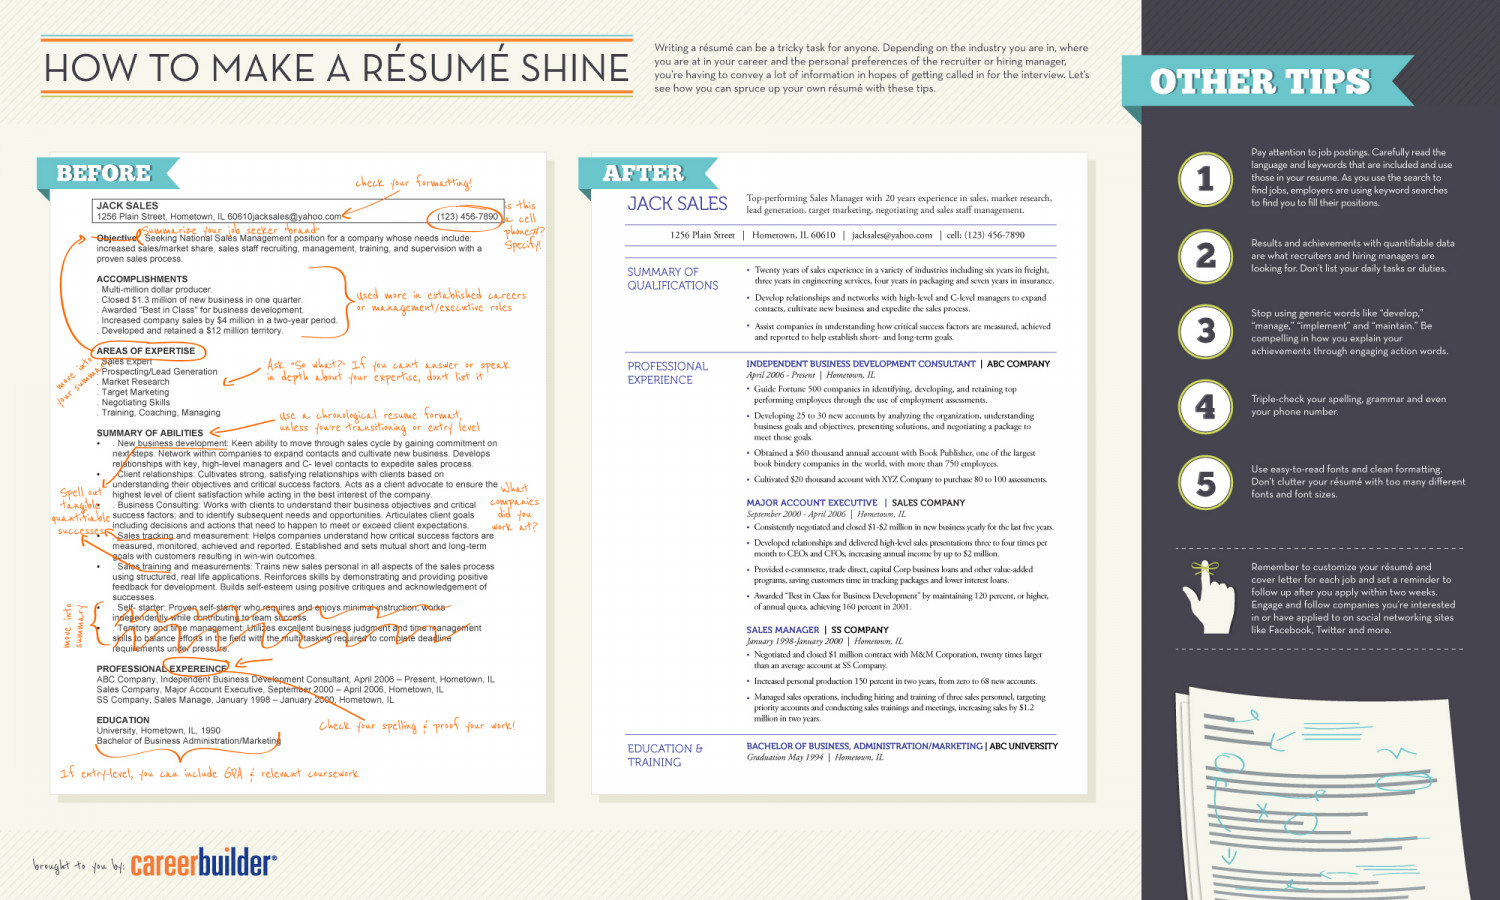 How To Make A Resume Shine Infographic